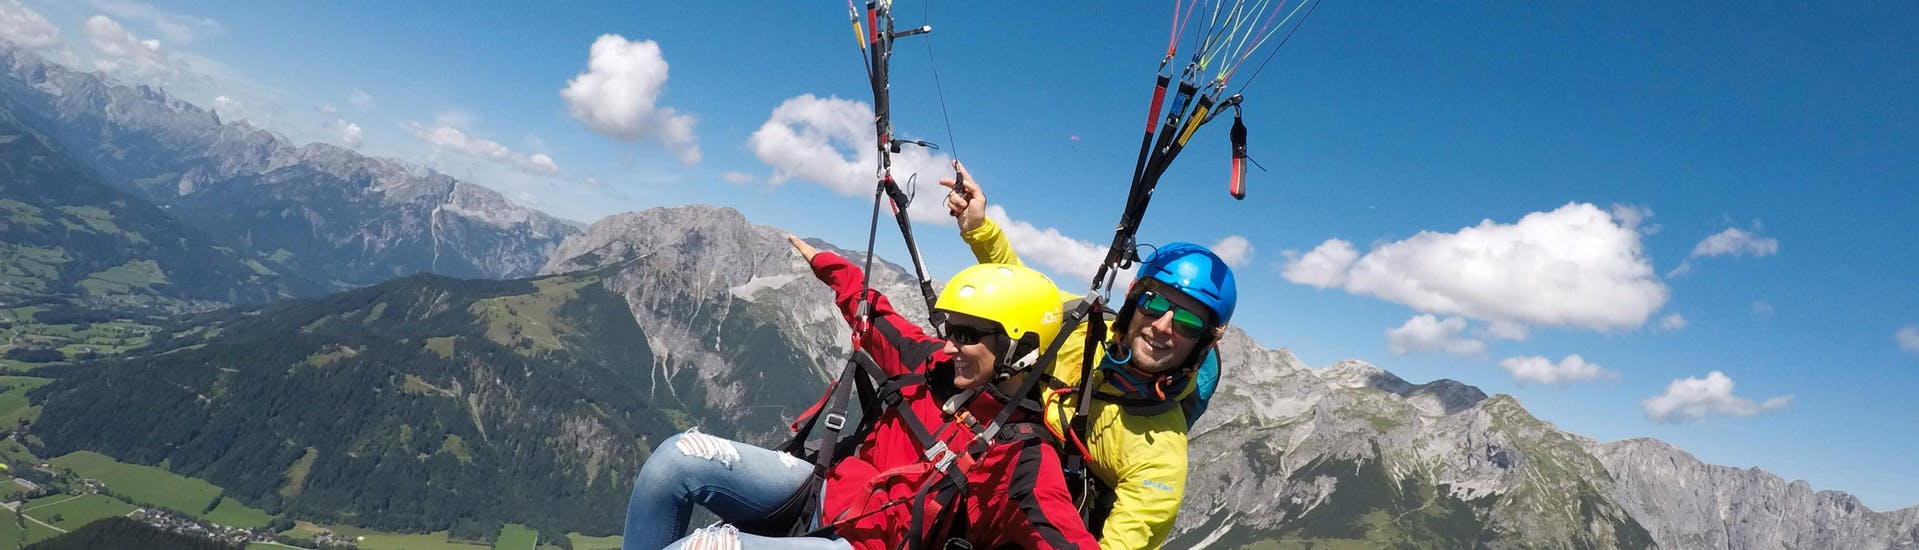 Classic Tandem Paragliding from Bischling in Werfenweng